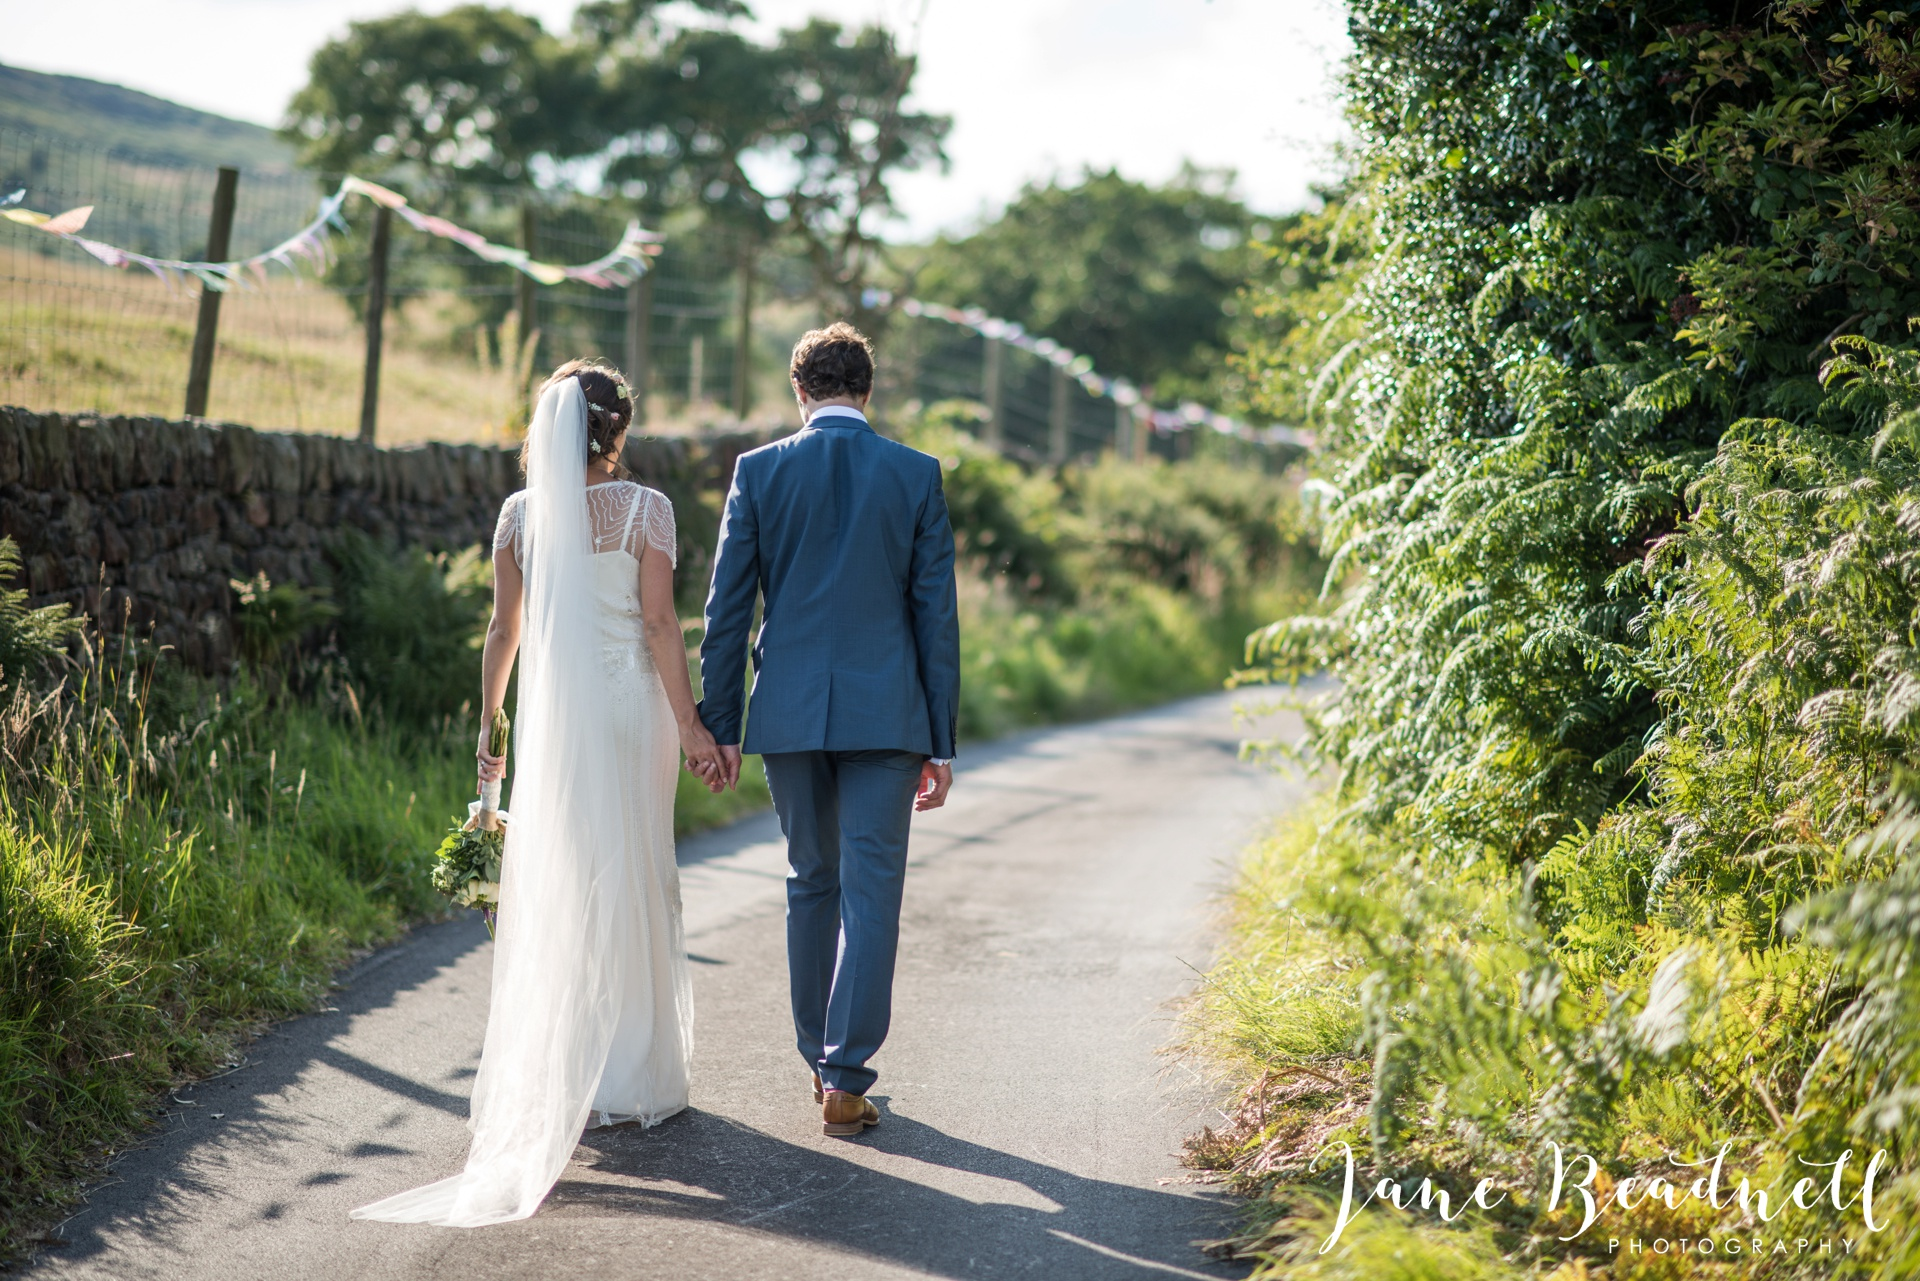 Jane Beadnell fine art wedding photographer Leeds_0083